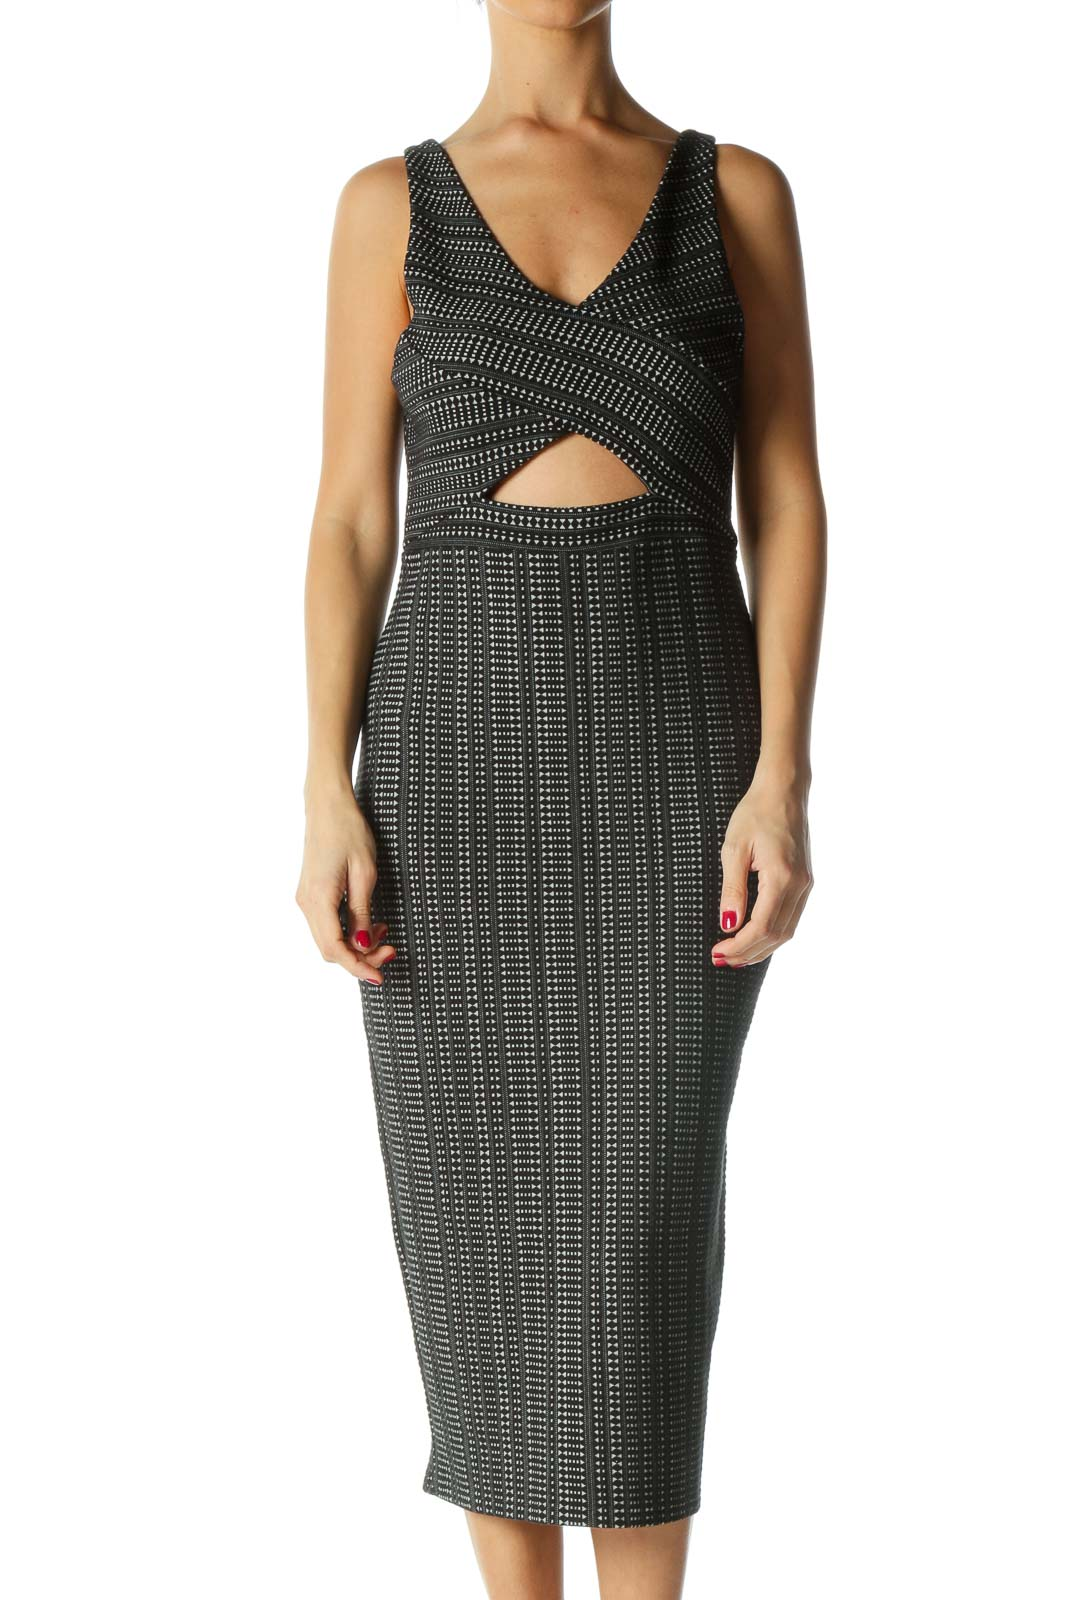 Black and White Print Cut-Out Sheath Dress Front